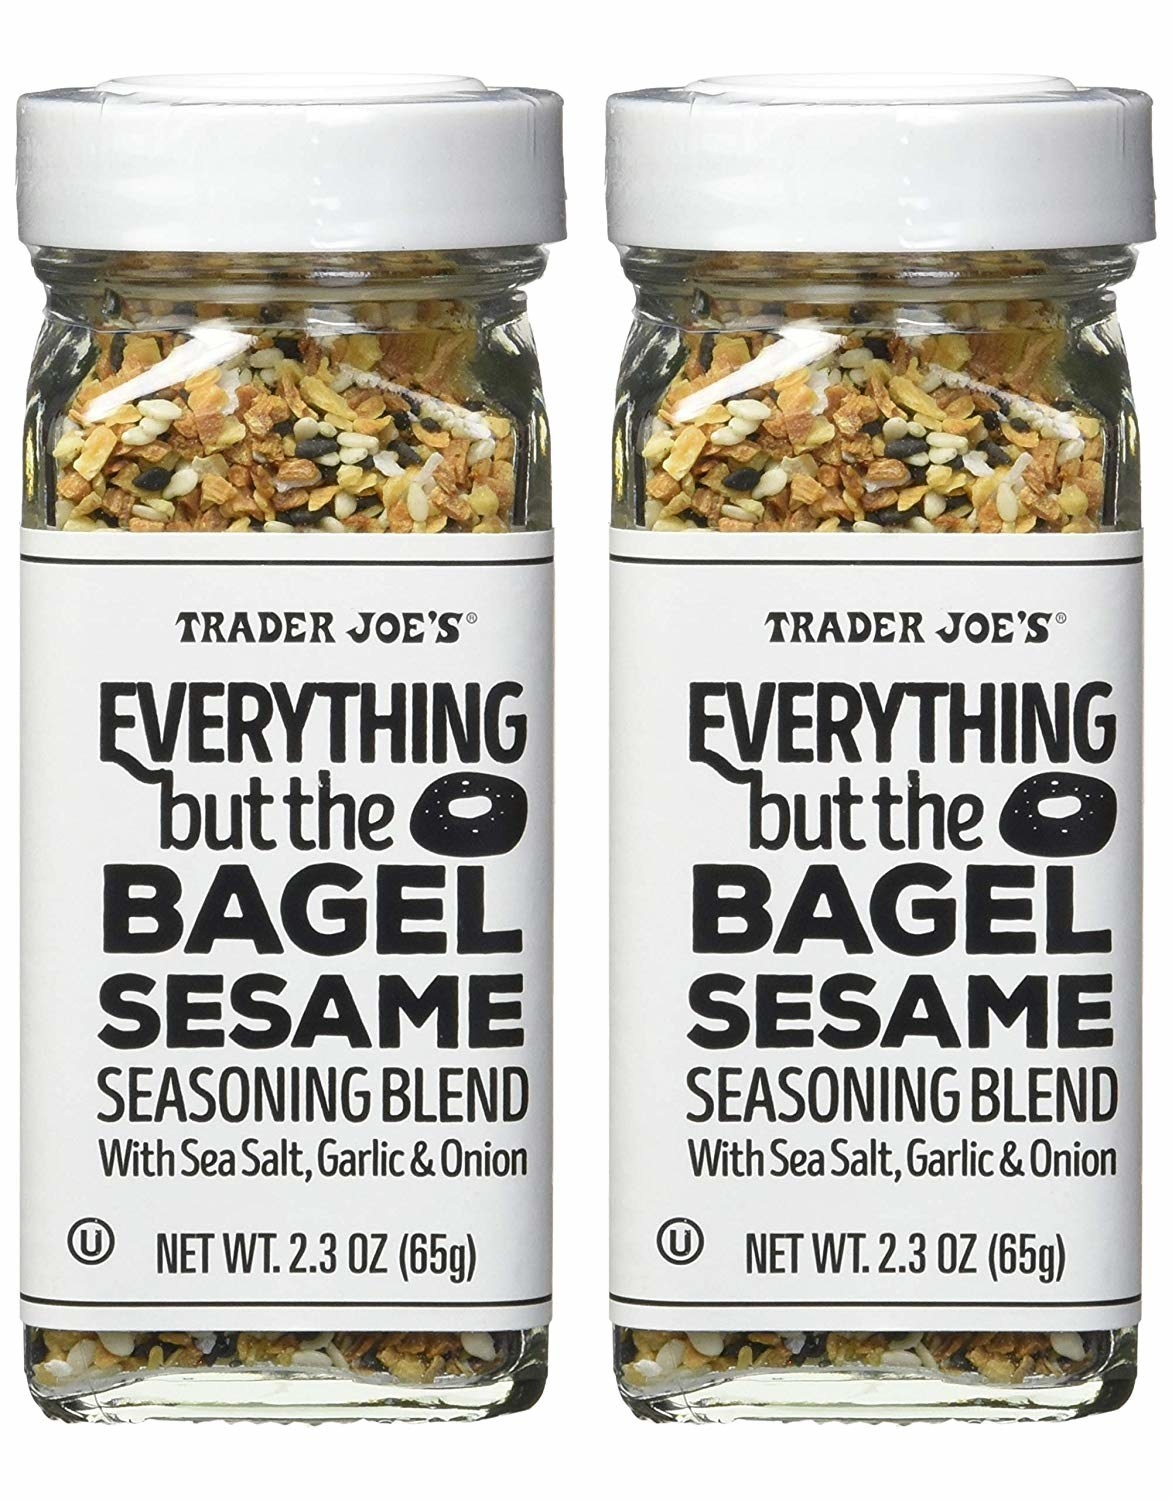 A pair of everything bagel seasoning jars on a simple background